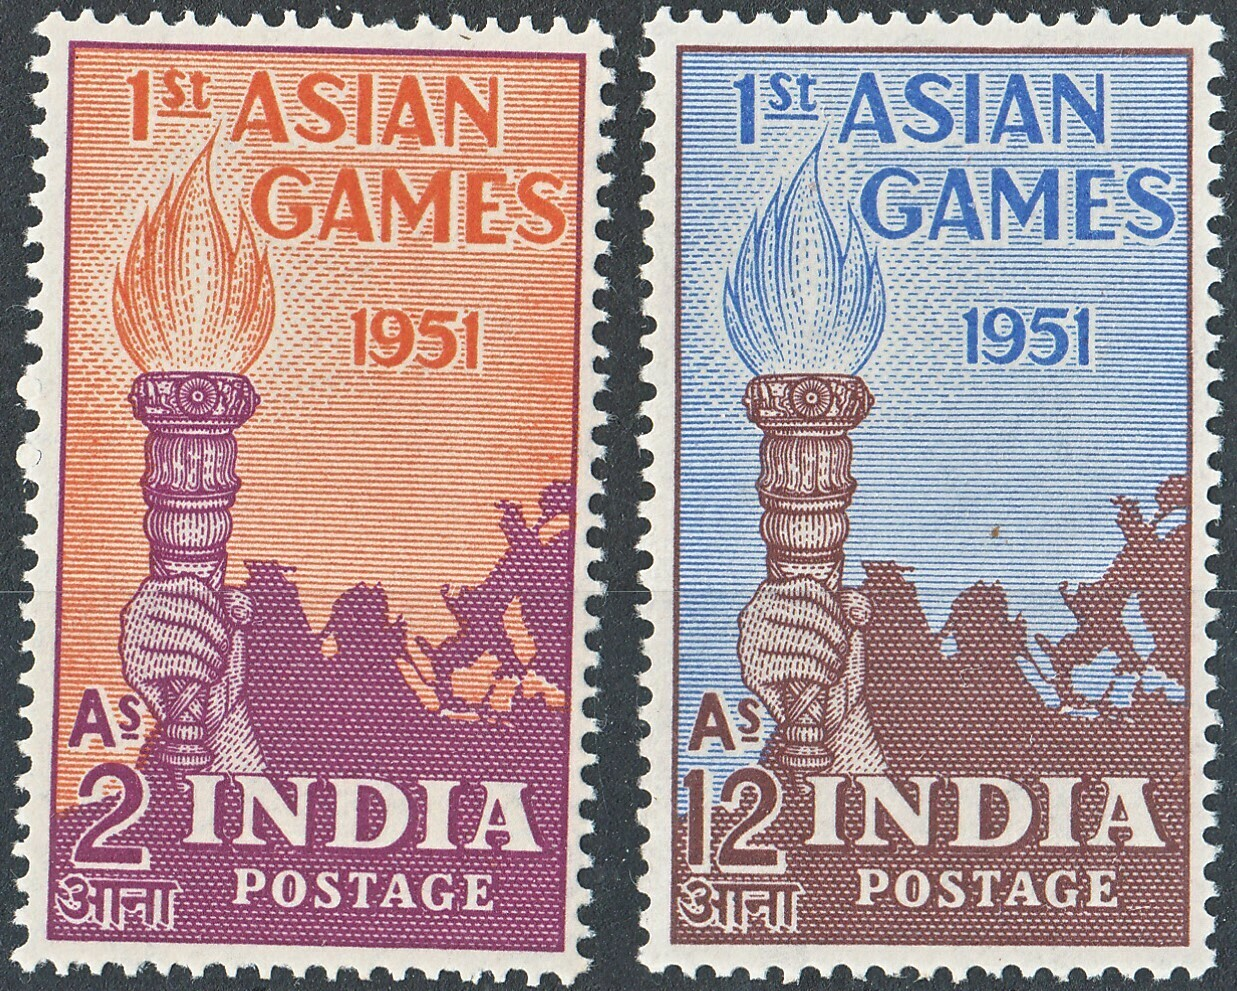 India 1951 First Asian Games Set MLH